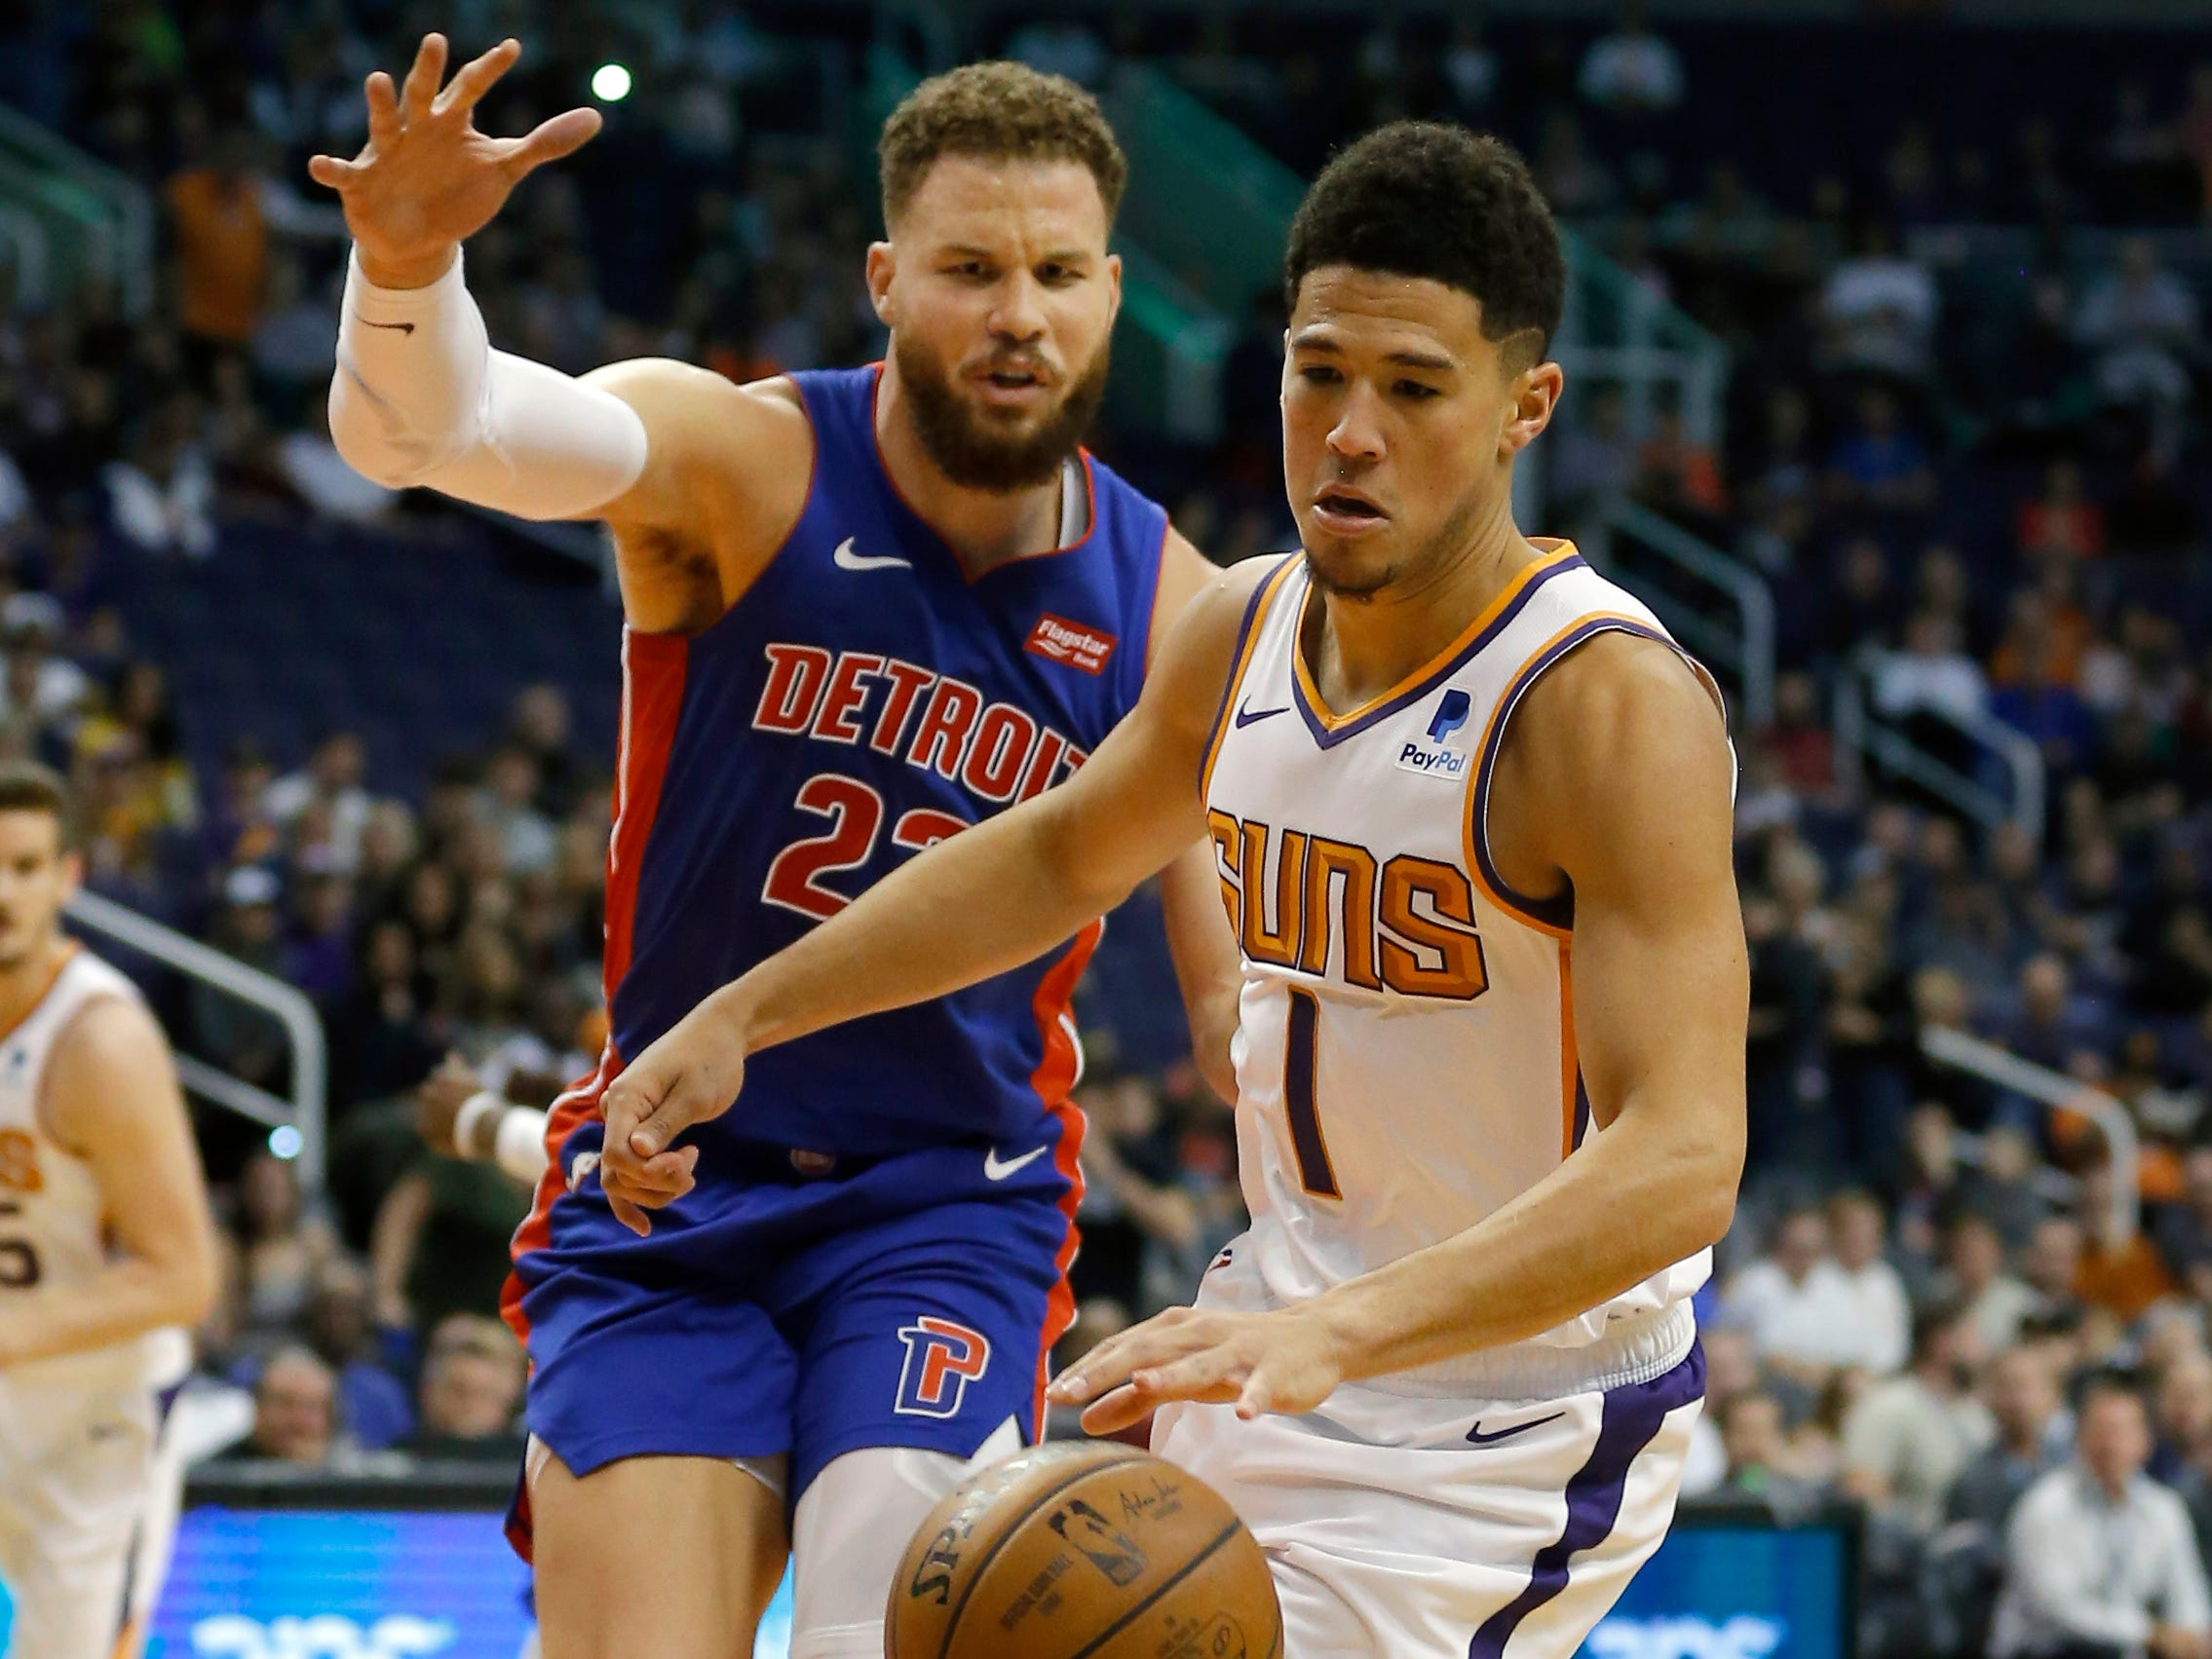 Mar 21, 2019; Phoenix, AZ, USA; Phoenix Suns guard Devin Booker (1) shields the ball from Detroit Pistons forward Blake Griffin (23) in the first half during an NBA basketball game at Talking Stick Resort Arena.